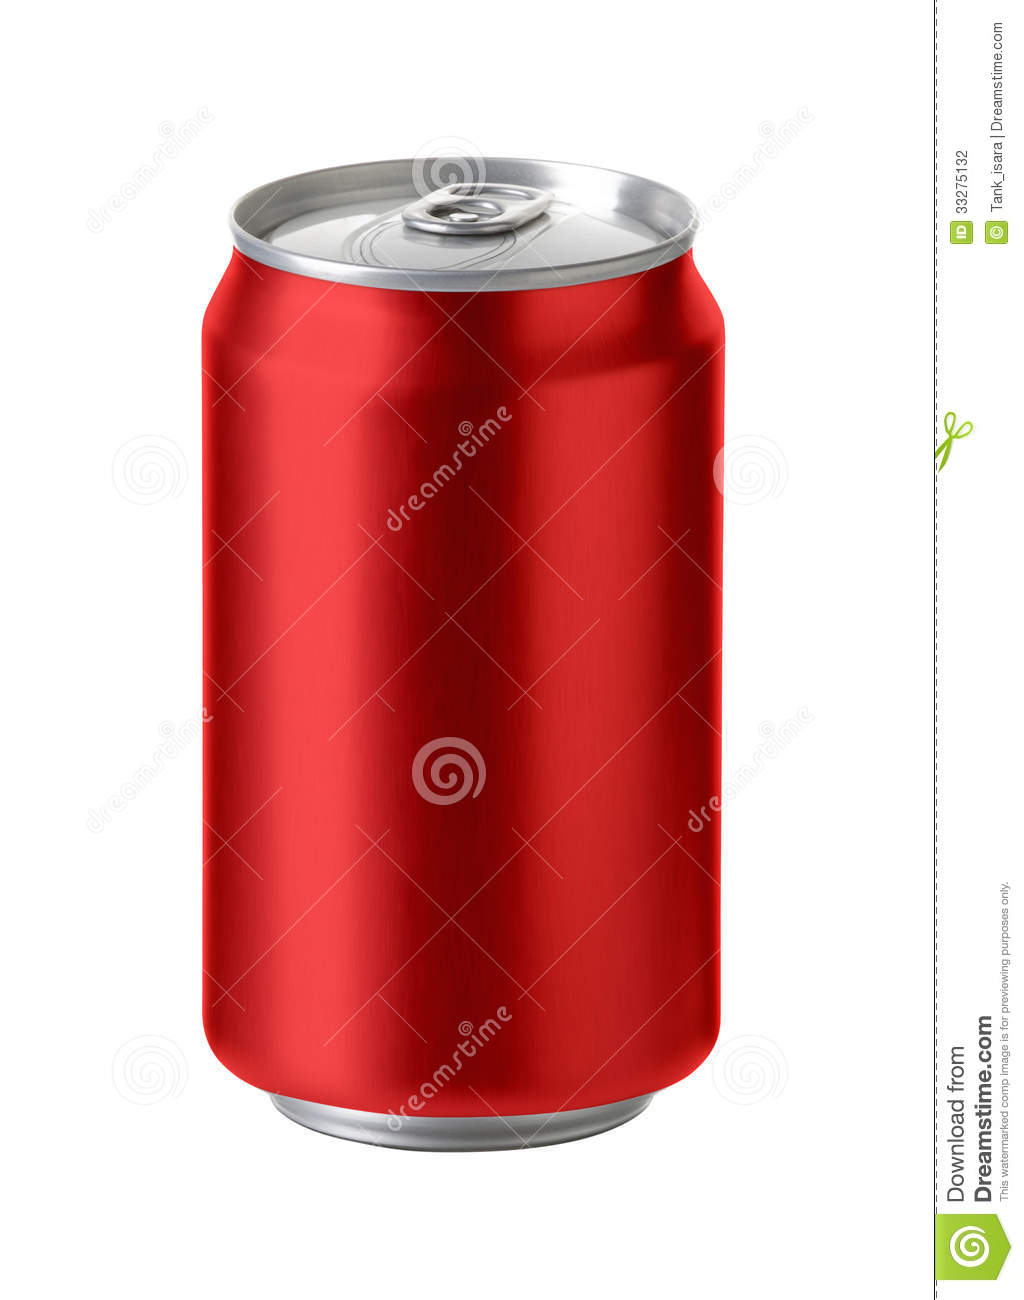 Drink Can From Blank Aluminum Stock Photo: Red Aluminum Cans, Realistic Photo Image Stock Photo